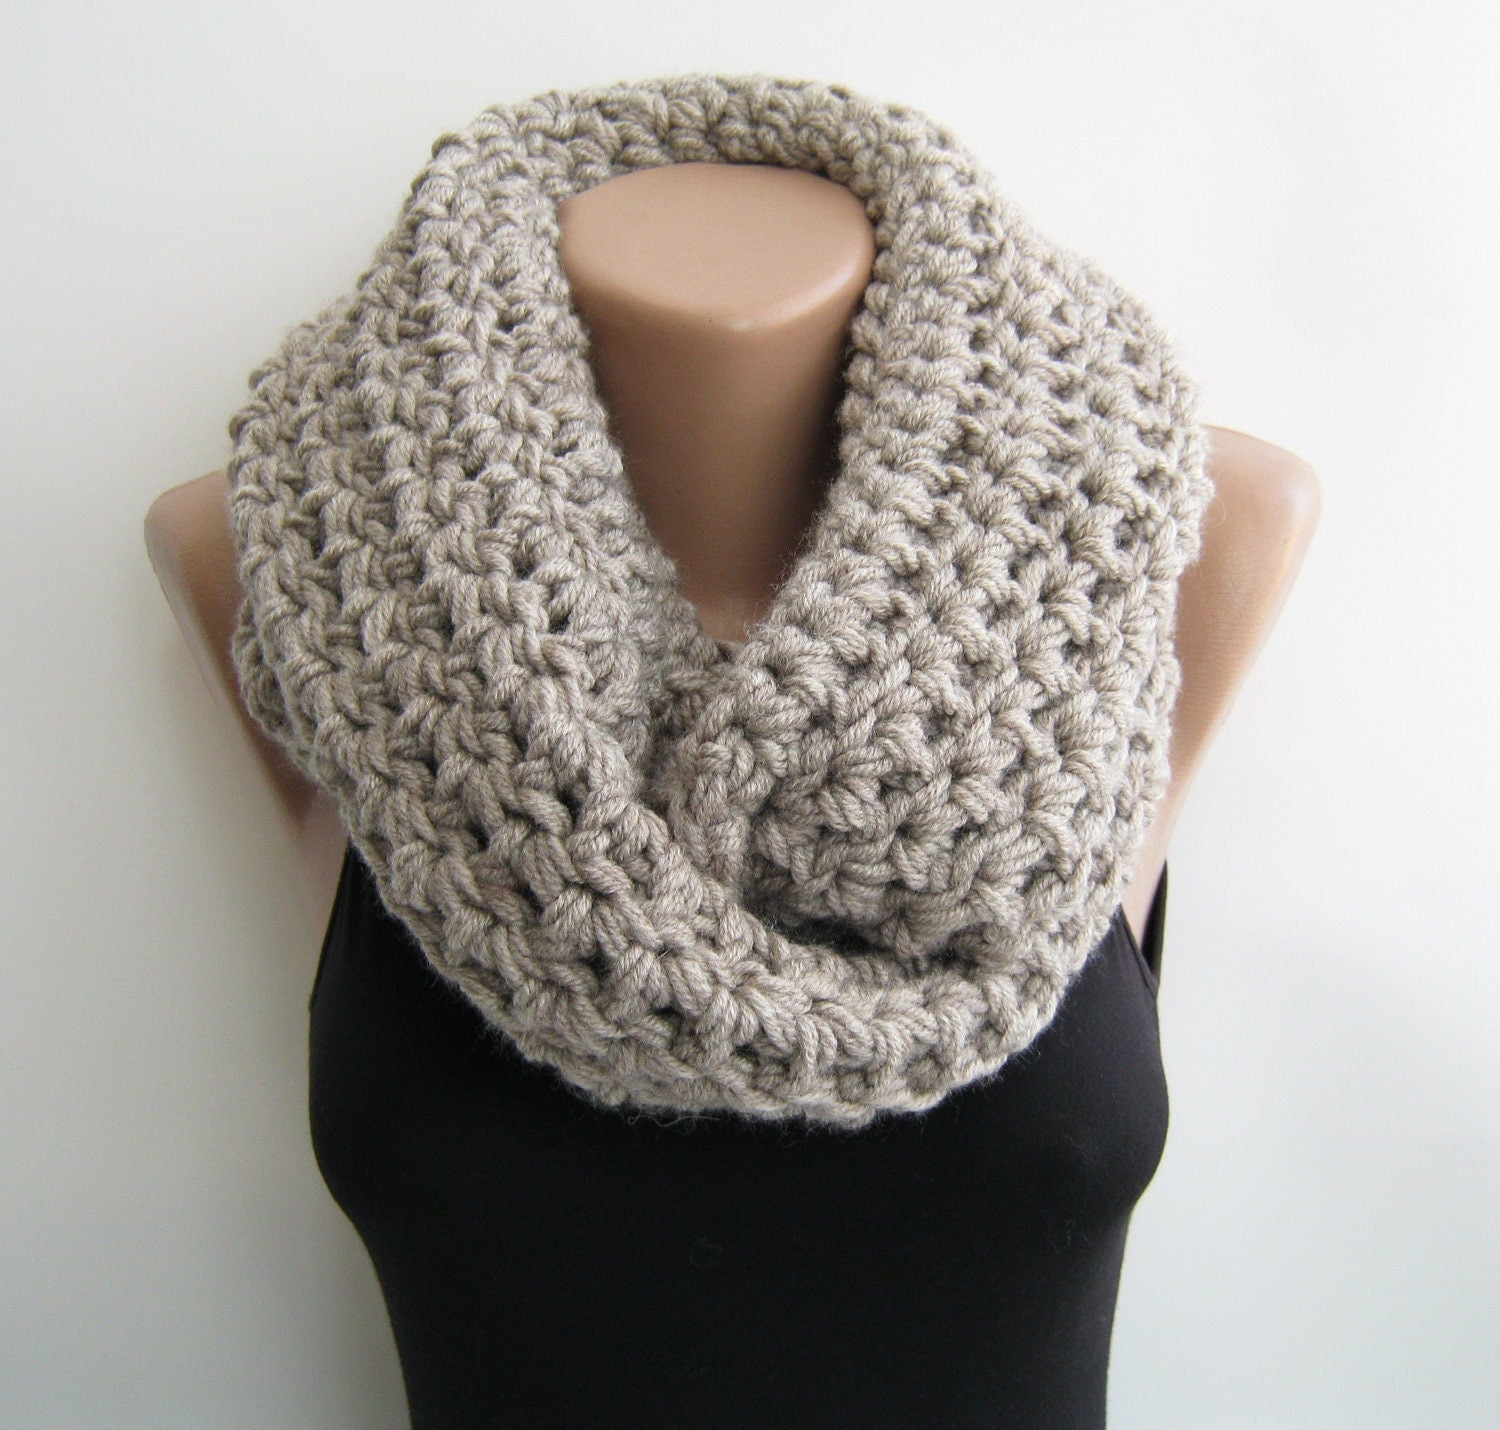 Crocheting Infinity Scarf : Crochet infinity scarf oat meal chunky circle by sascarves on Etsy